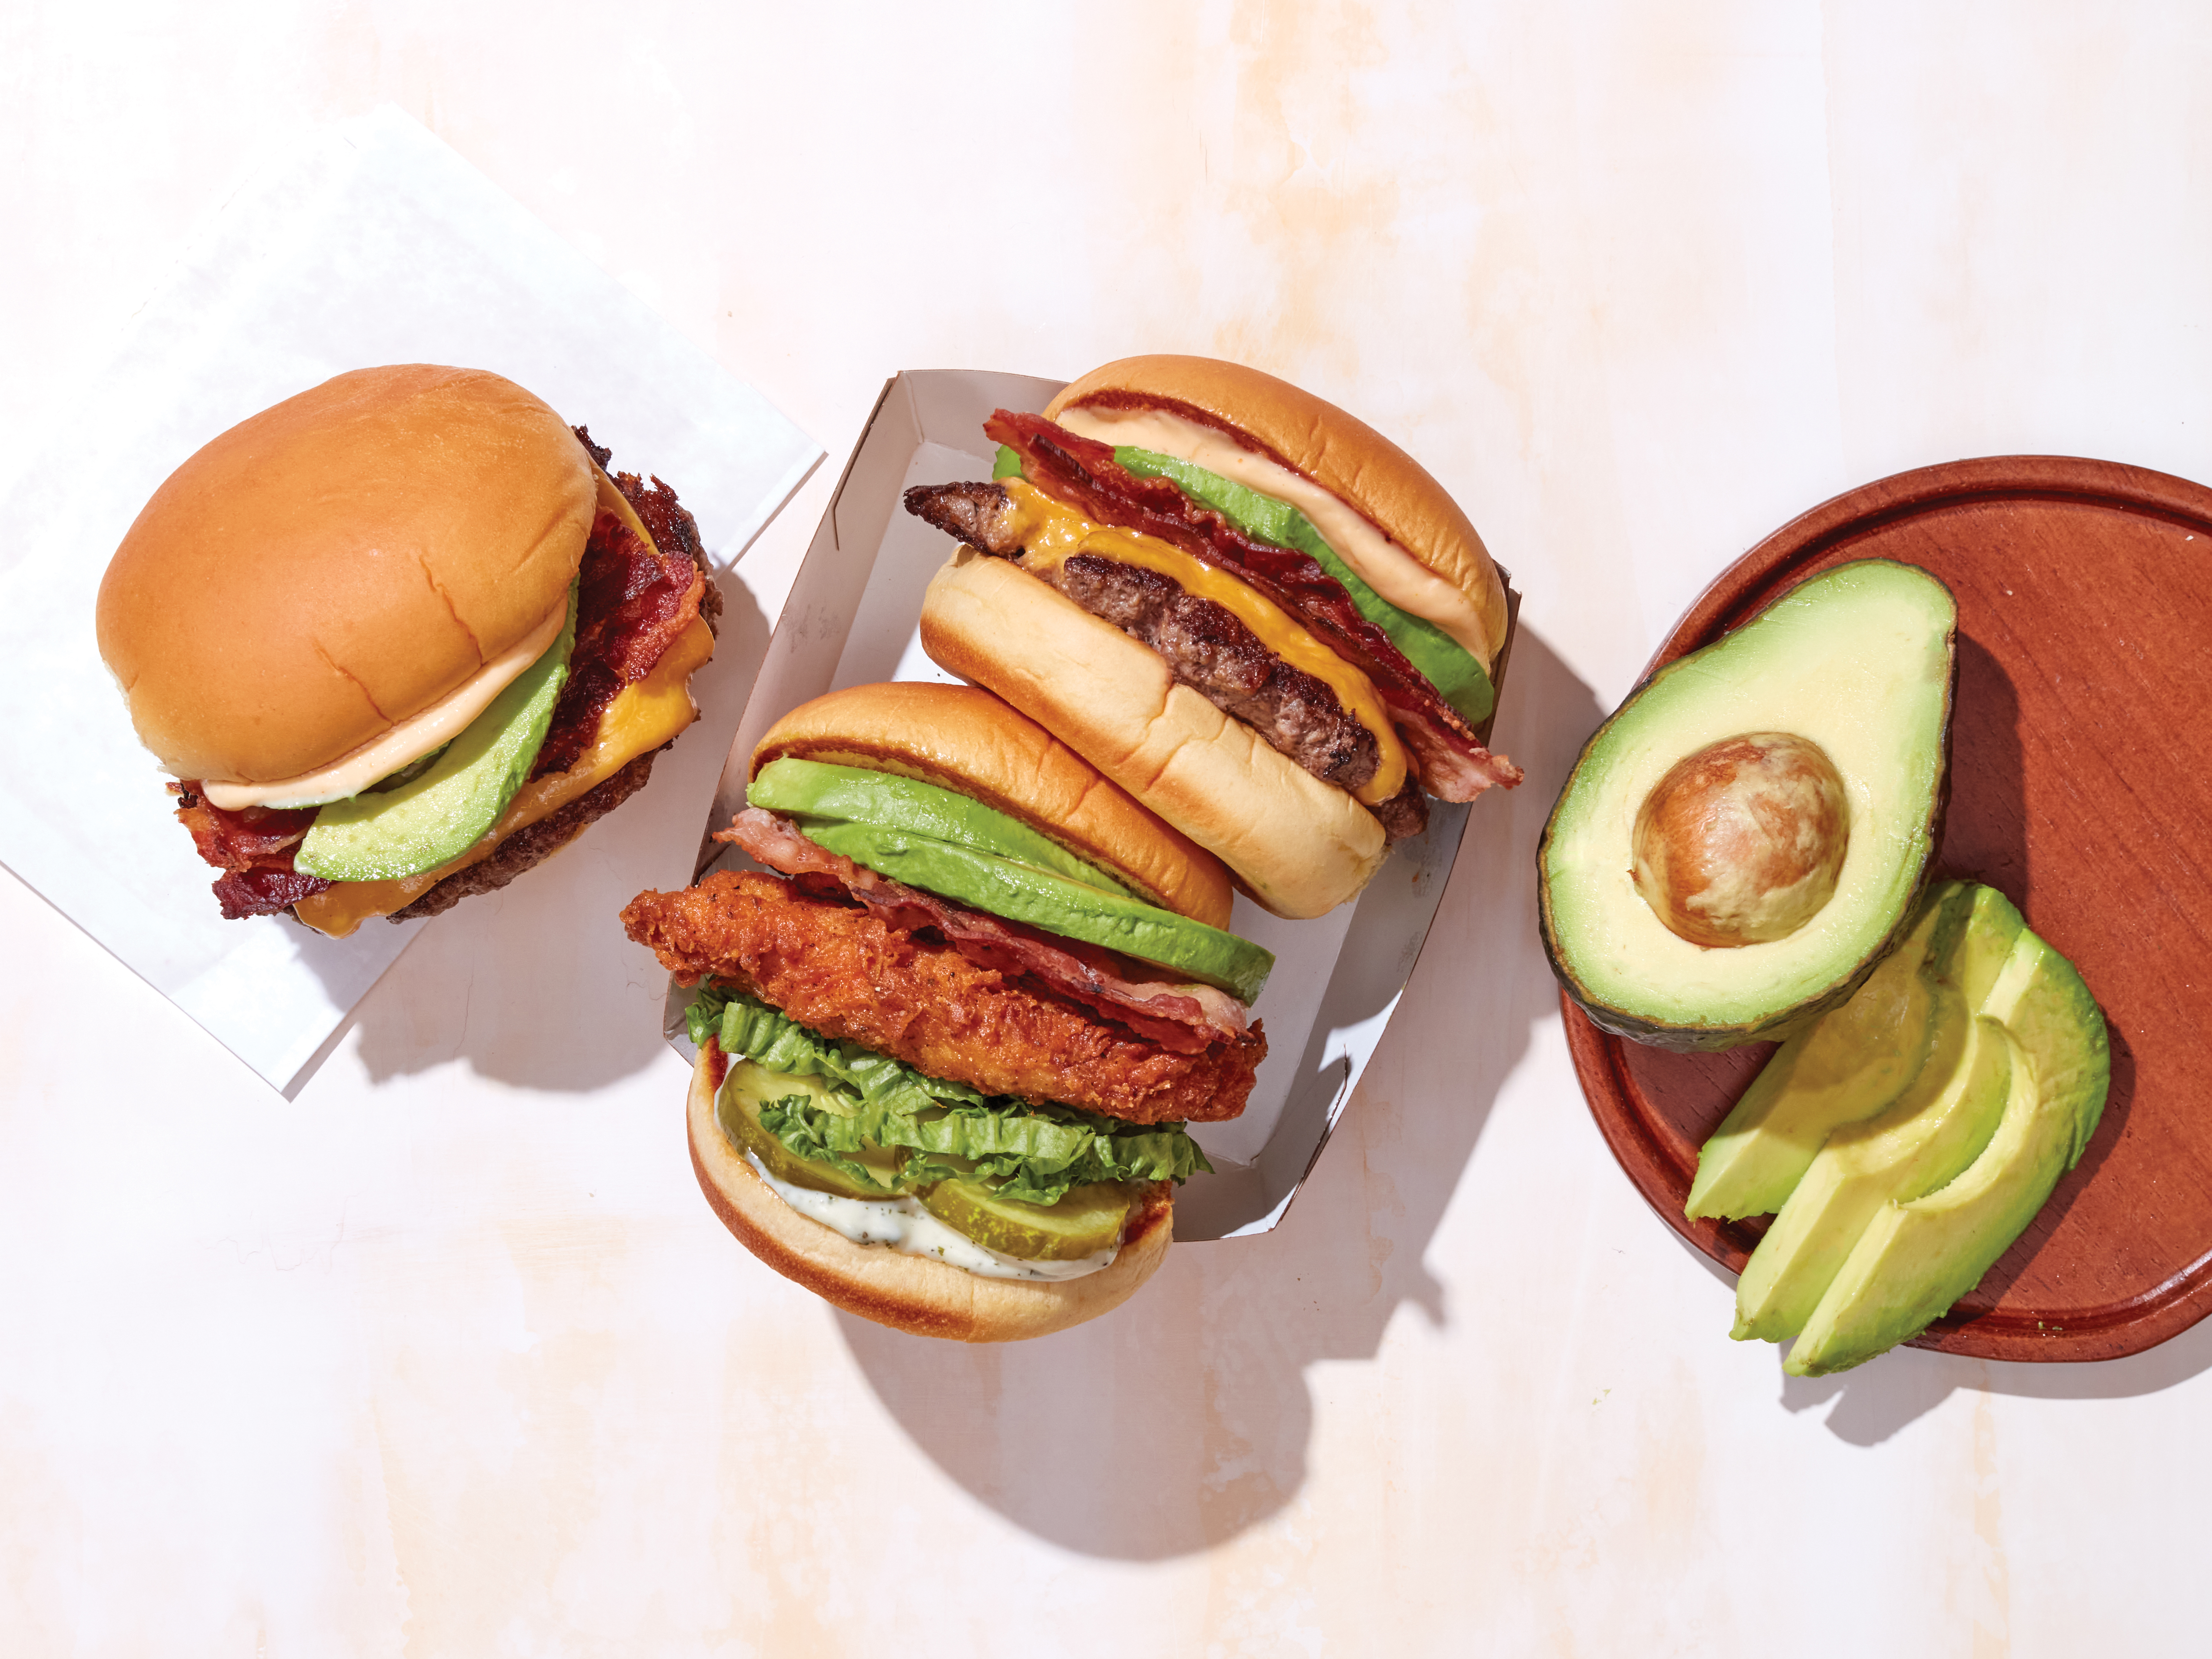 Burgers, chicken sandwiches, and a whole avocado sit on a table. These are Shake Shack's burgers and fried chicken sandwiches